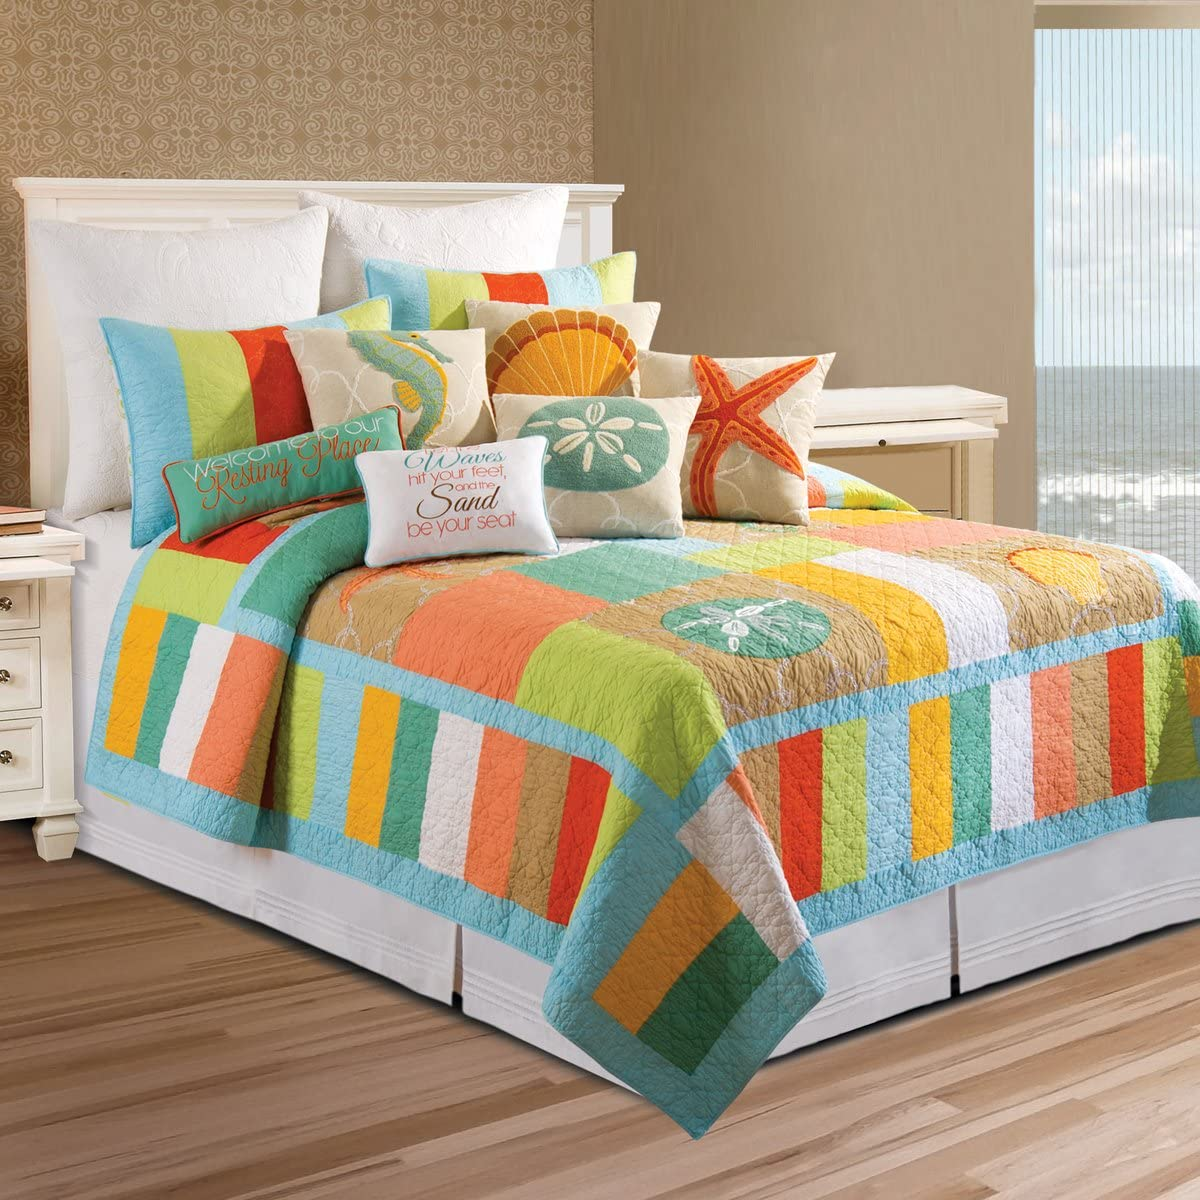 C&F Home 89989.8686 Washed Ashore for Q Quilt, Full/Queen, Blue